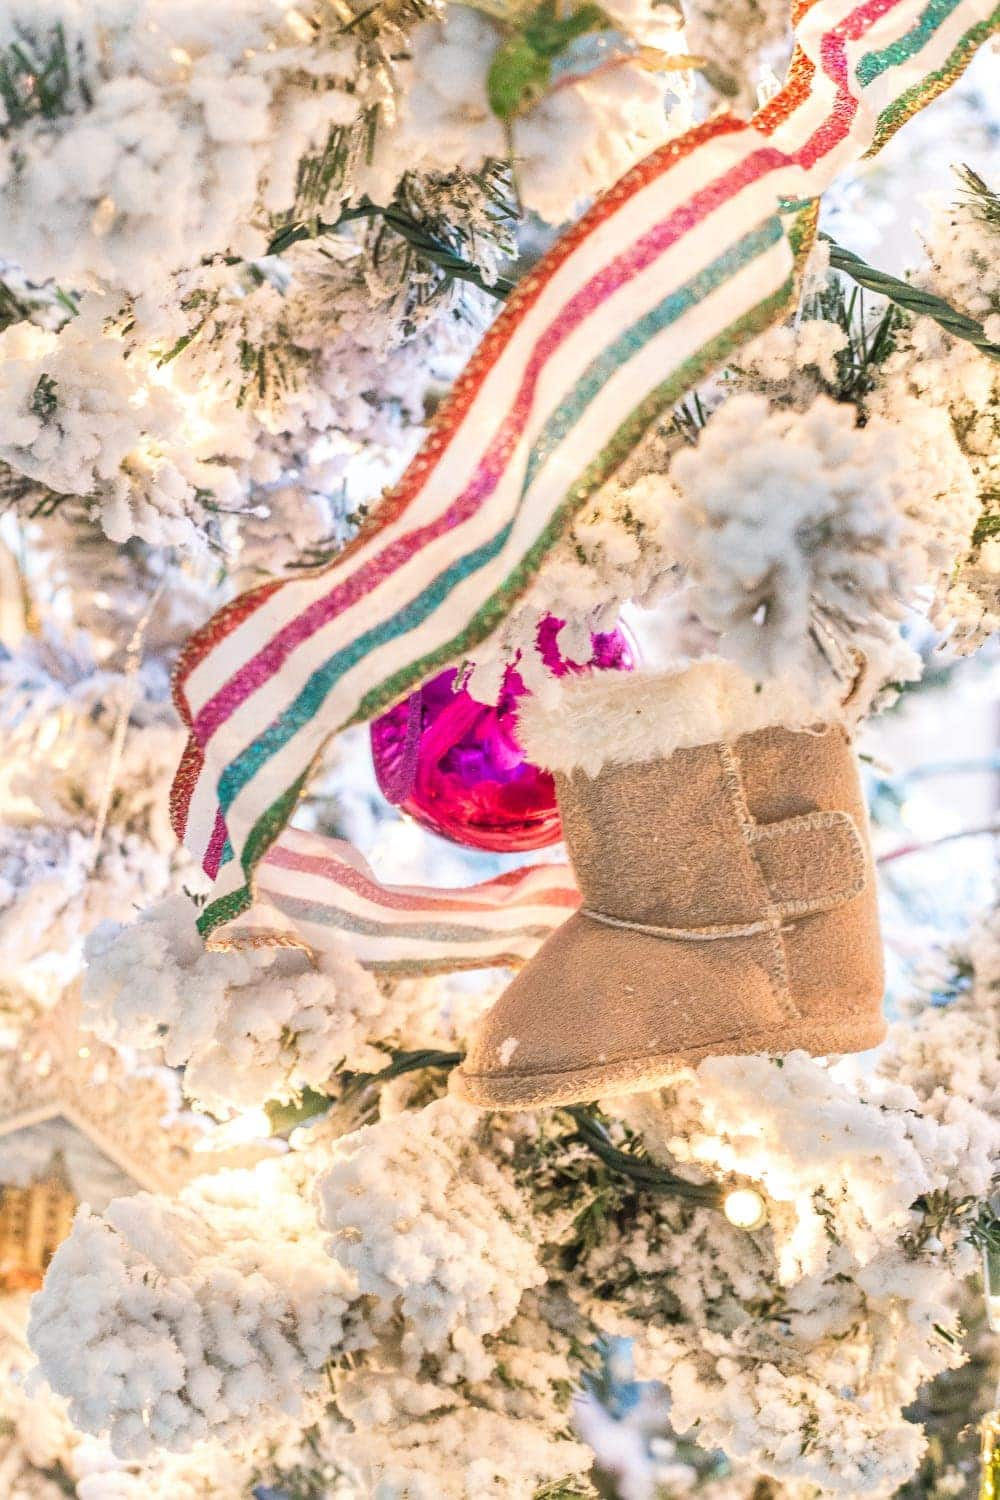 Thrifty Christmas decorating idea: place baby shoes in tree as memorable ornaments